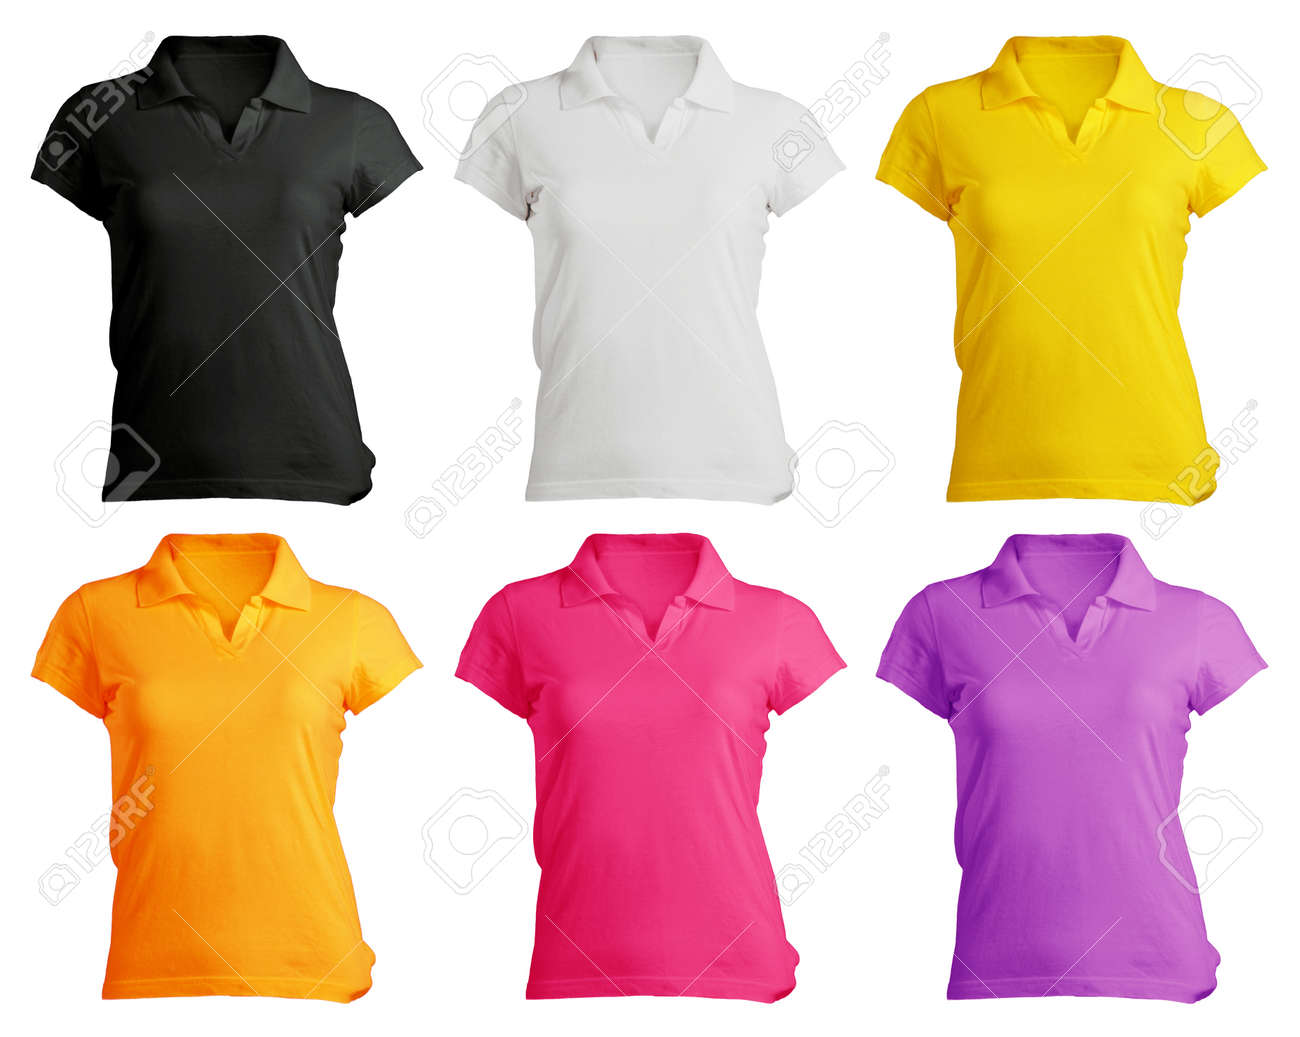 Women S Polo Shirt Template In Colors Stock Photo, Picture And ...